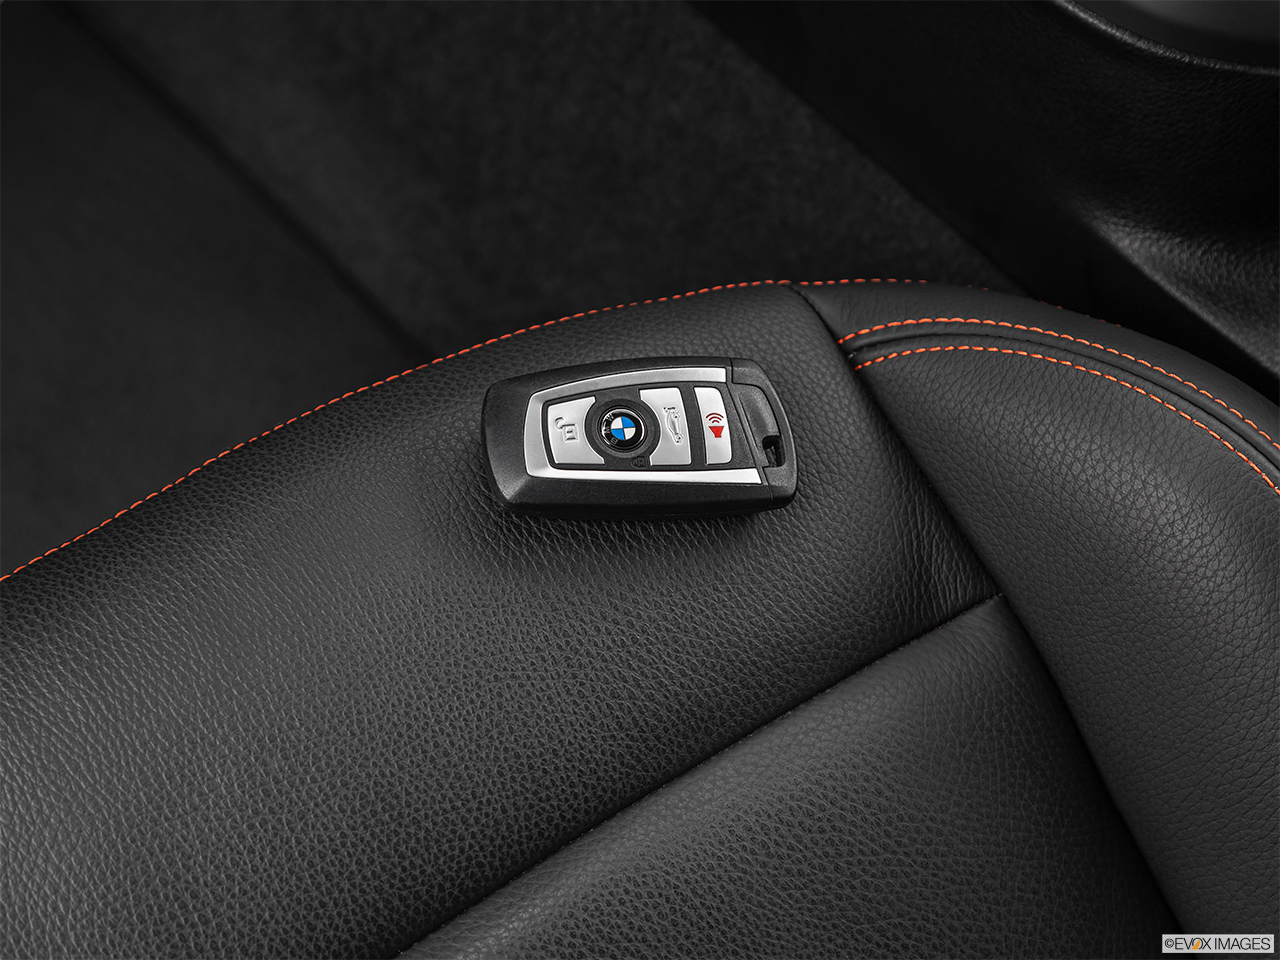 2020 BMW M2 Competition Key fob on driver's seat.